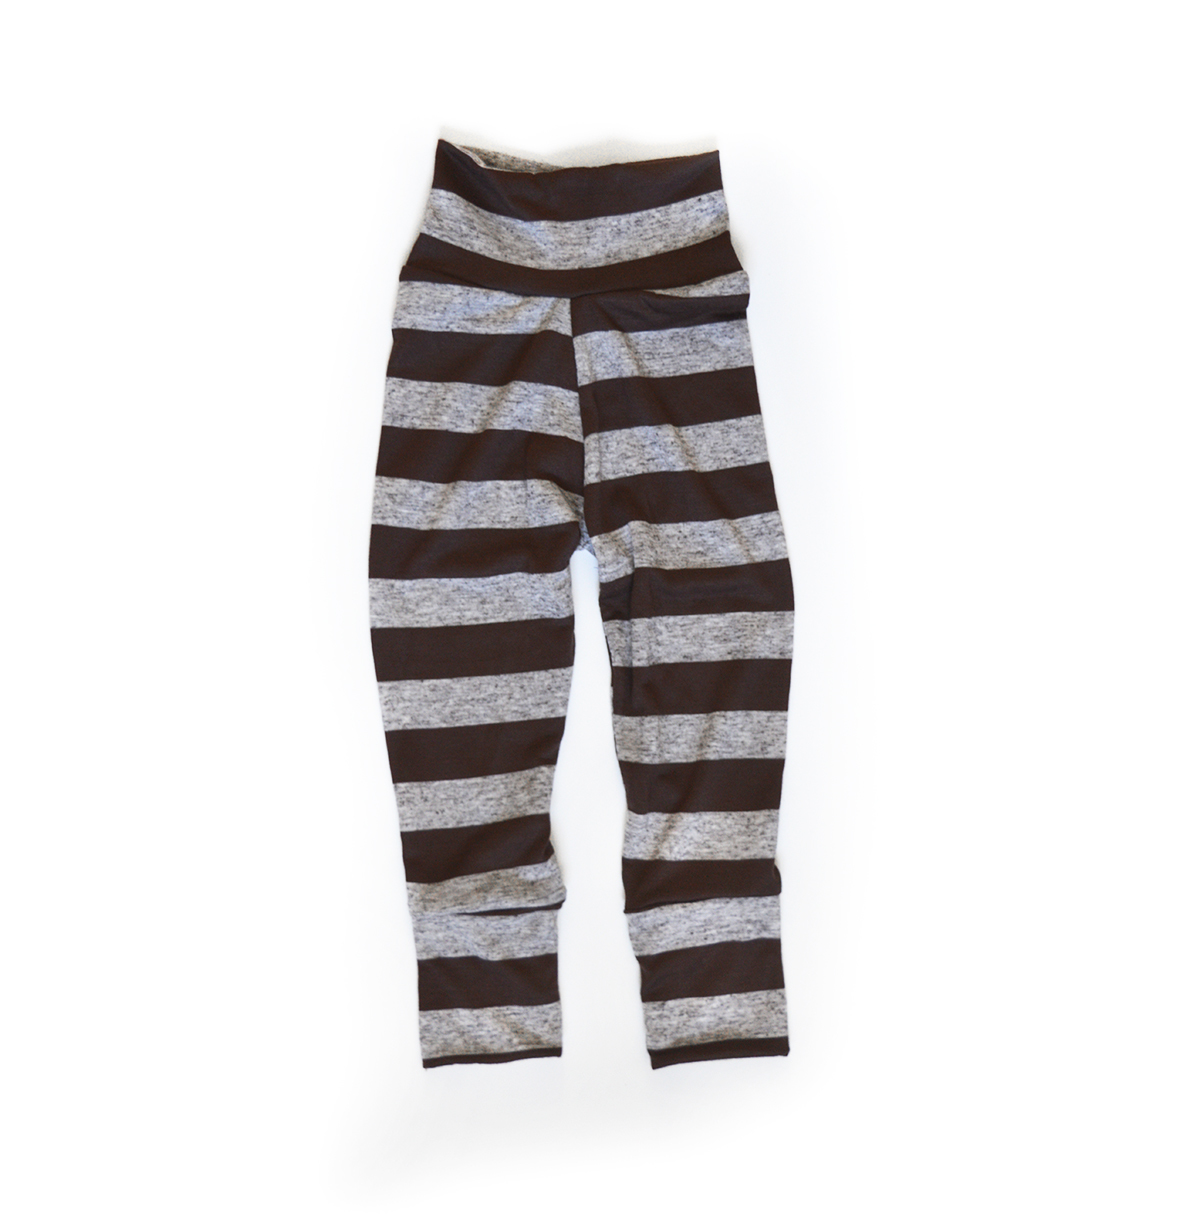 Little Sprout Pants™ Cocoa Stripe - Slim Fit 00503